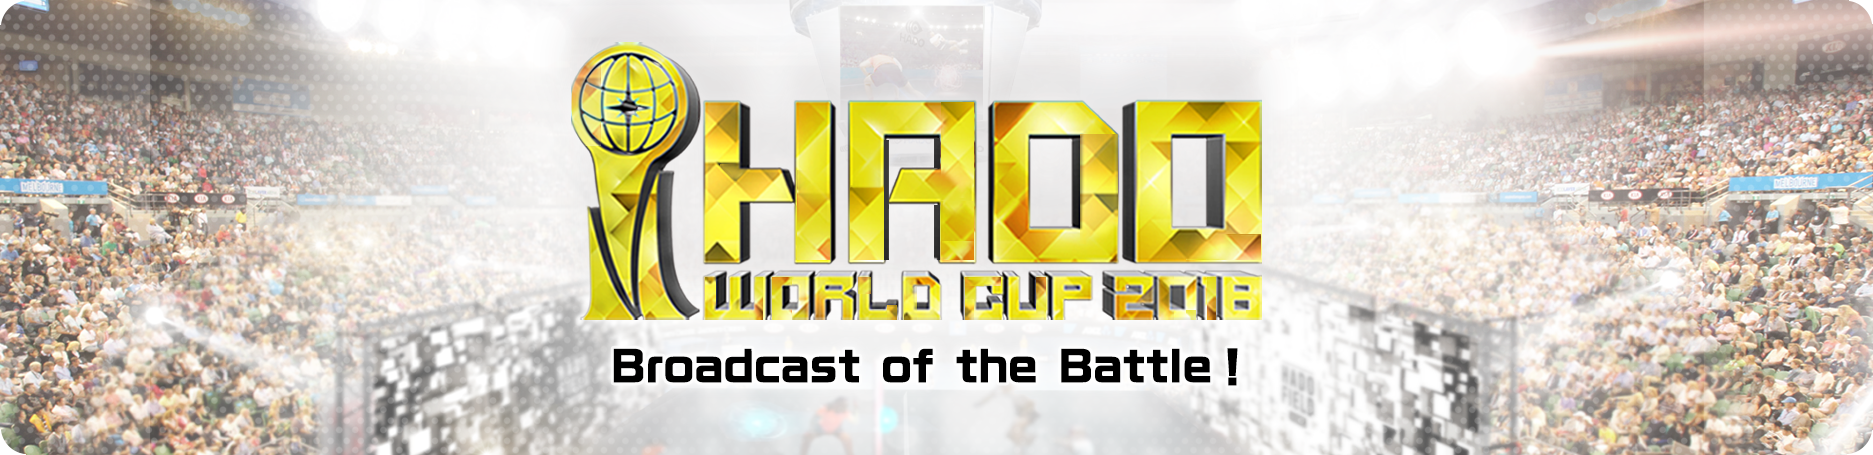 HADO WORLD CUP 2018 12/8(sat) 12:00 JST(UTC+0900)~ Broadcast of the Battle!